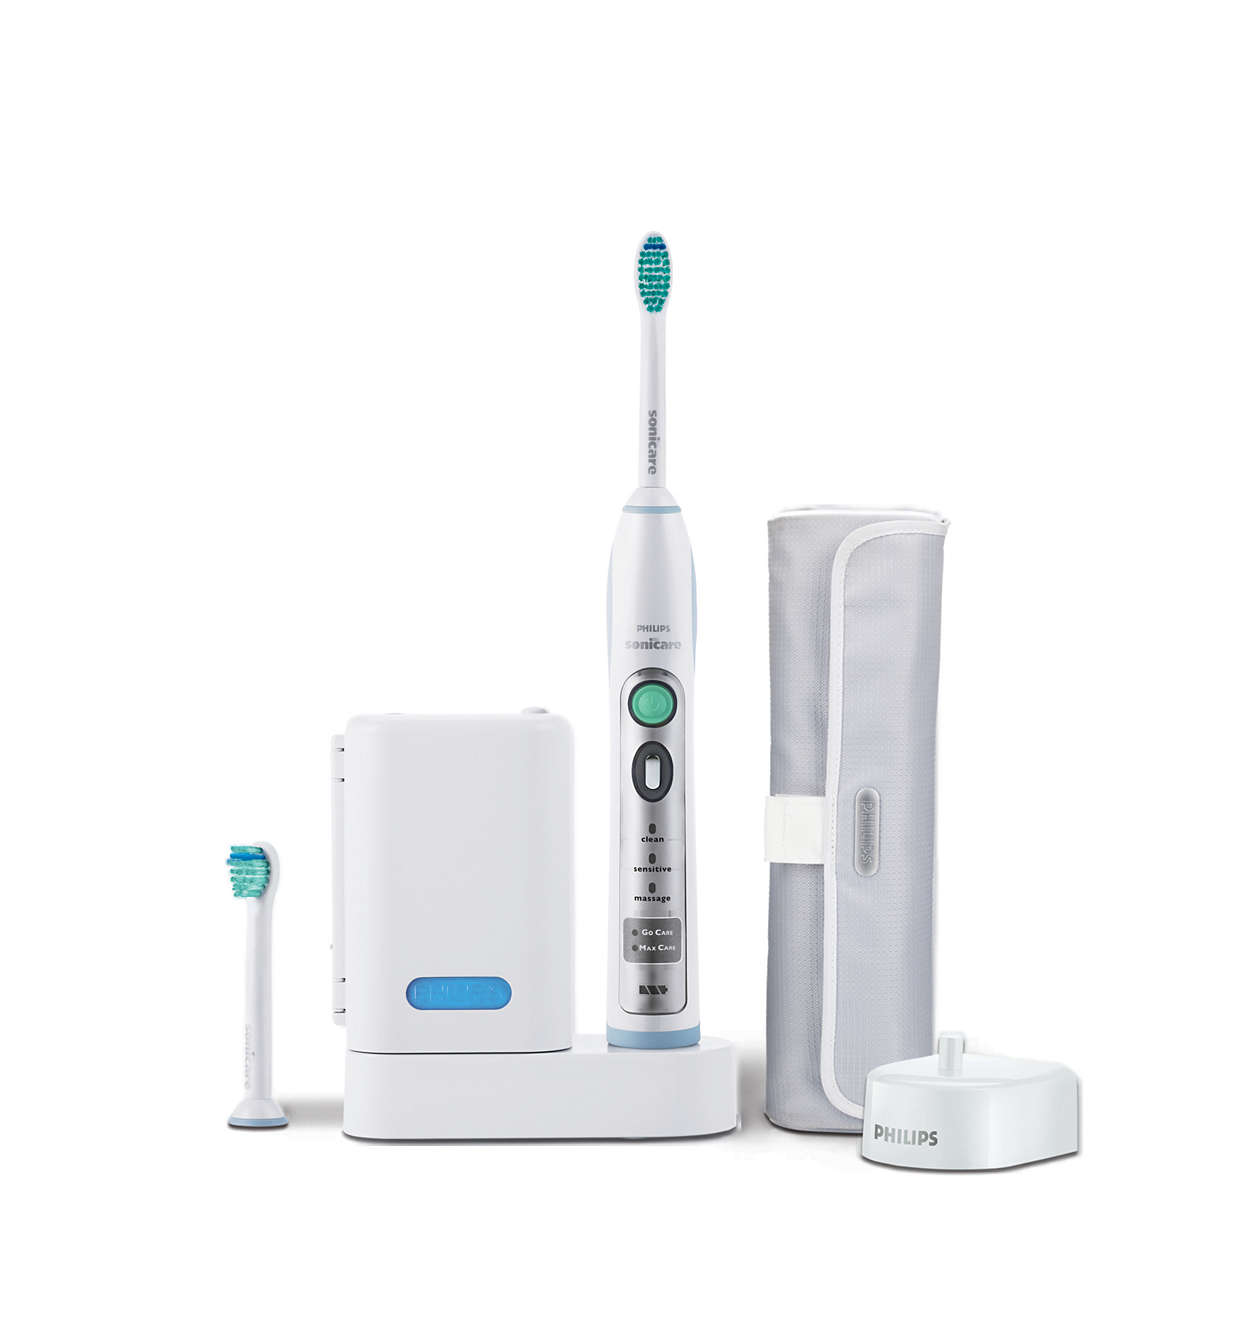 Your Philips Sonicare has been designed to last up to 3 weeks on a single charge. Read 'Traveling with your Philips Sonicare' for additional charging methods. The charging glass is designed to properly charge only one handle at a time.